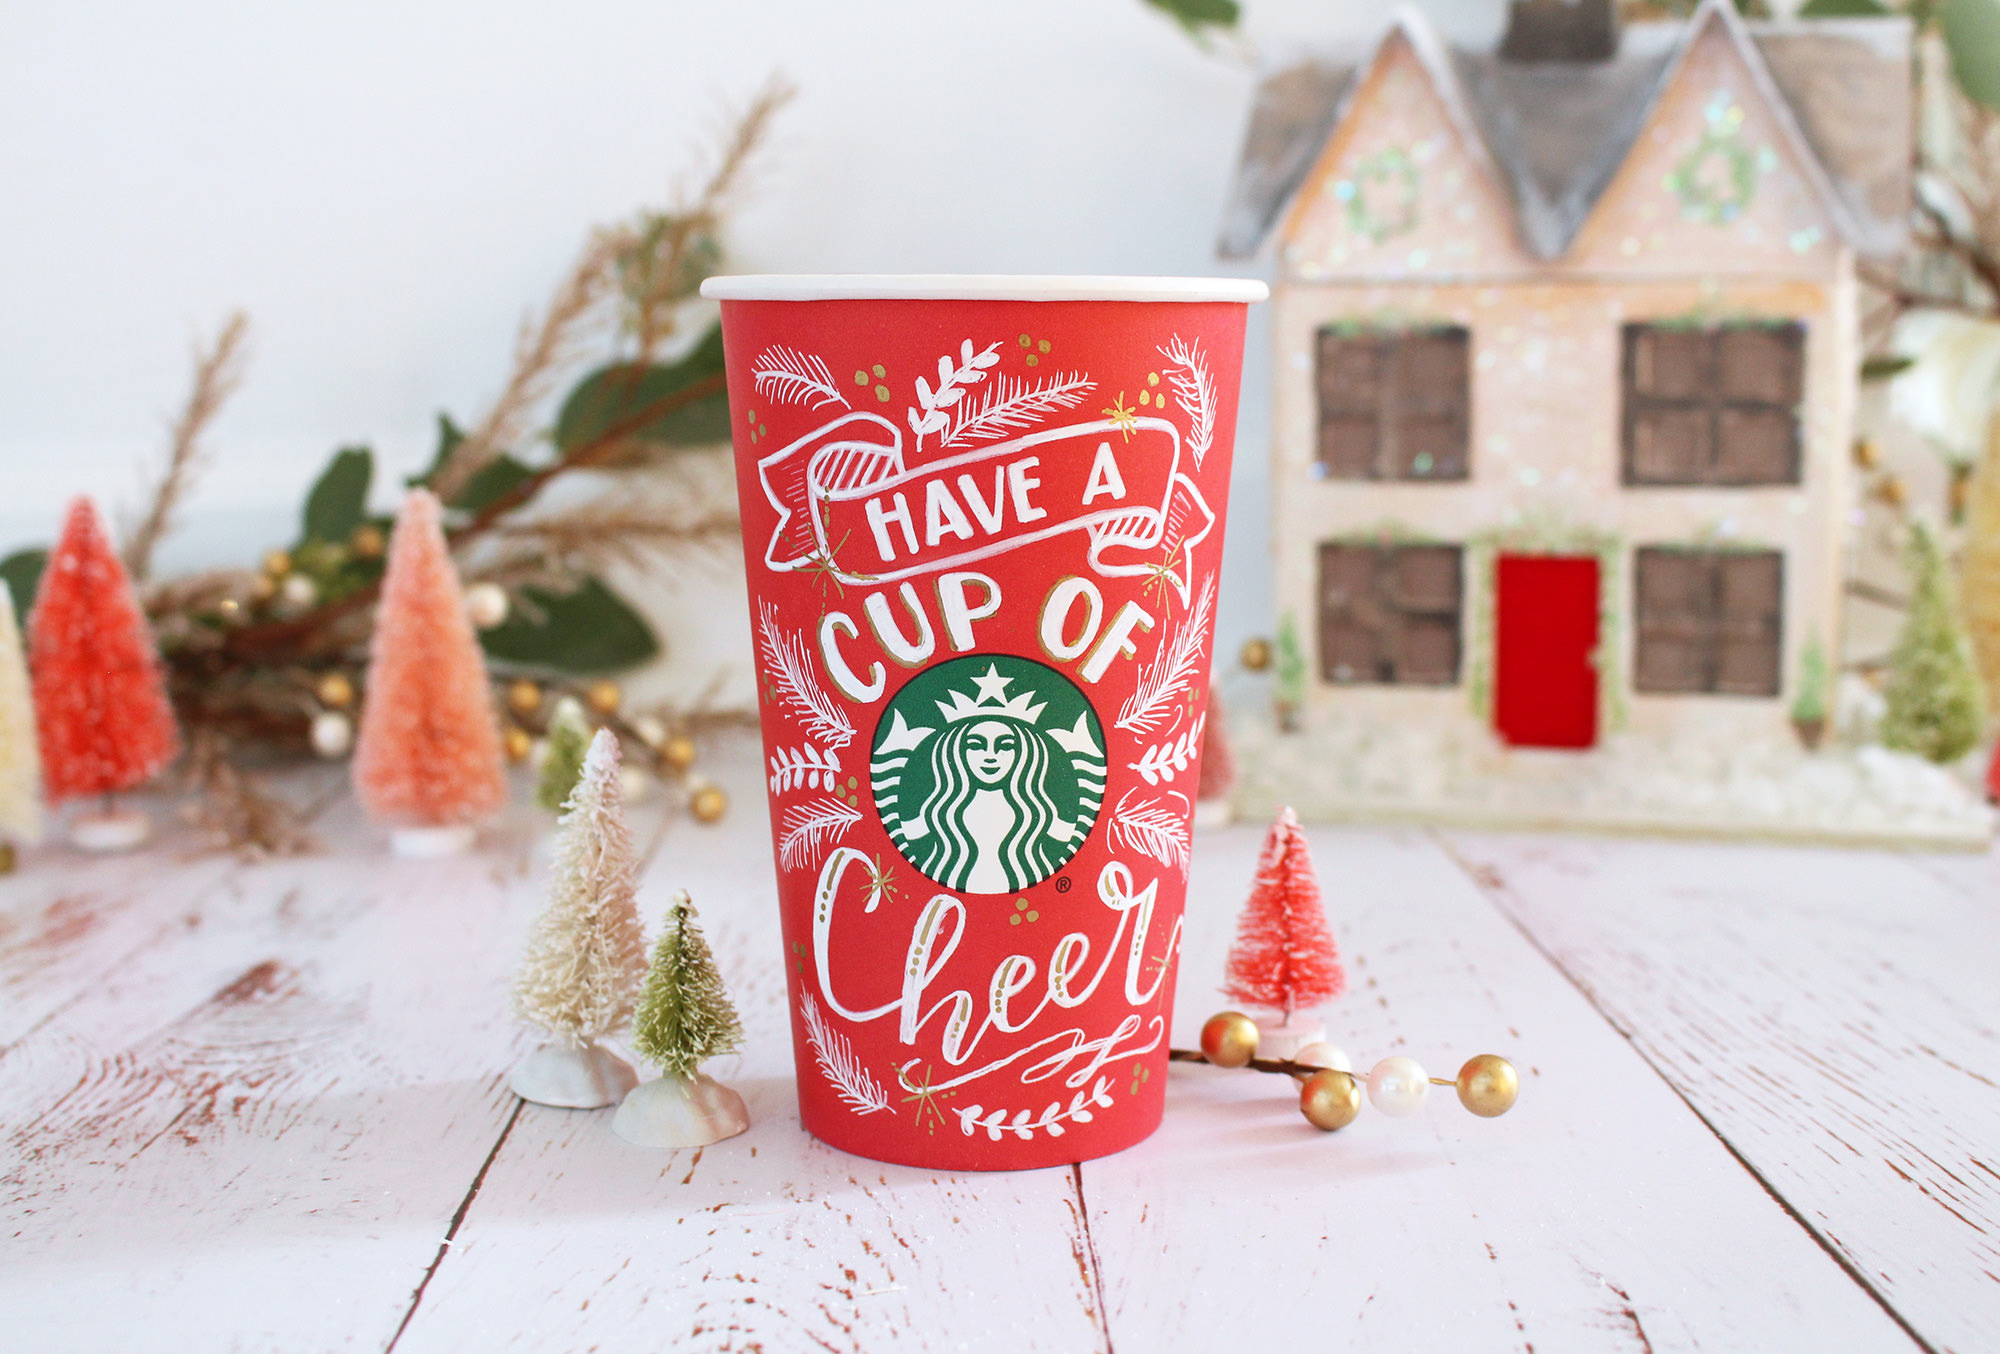 Starbucks red cup art by Valerie McKeehan of Lily & Val